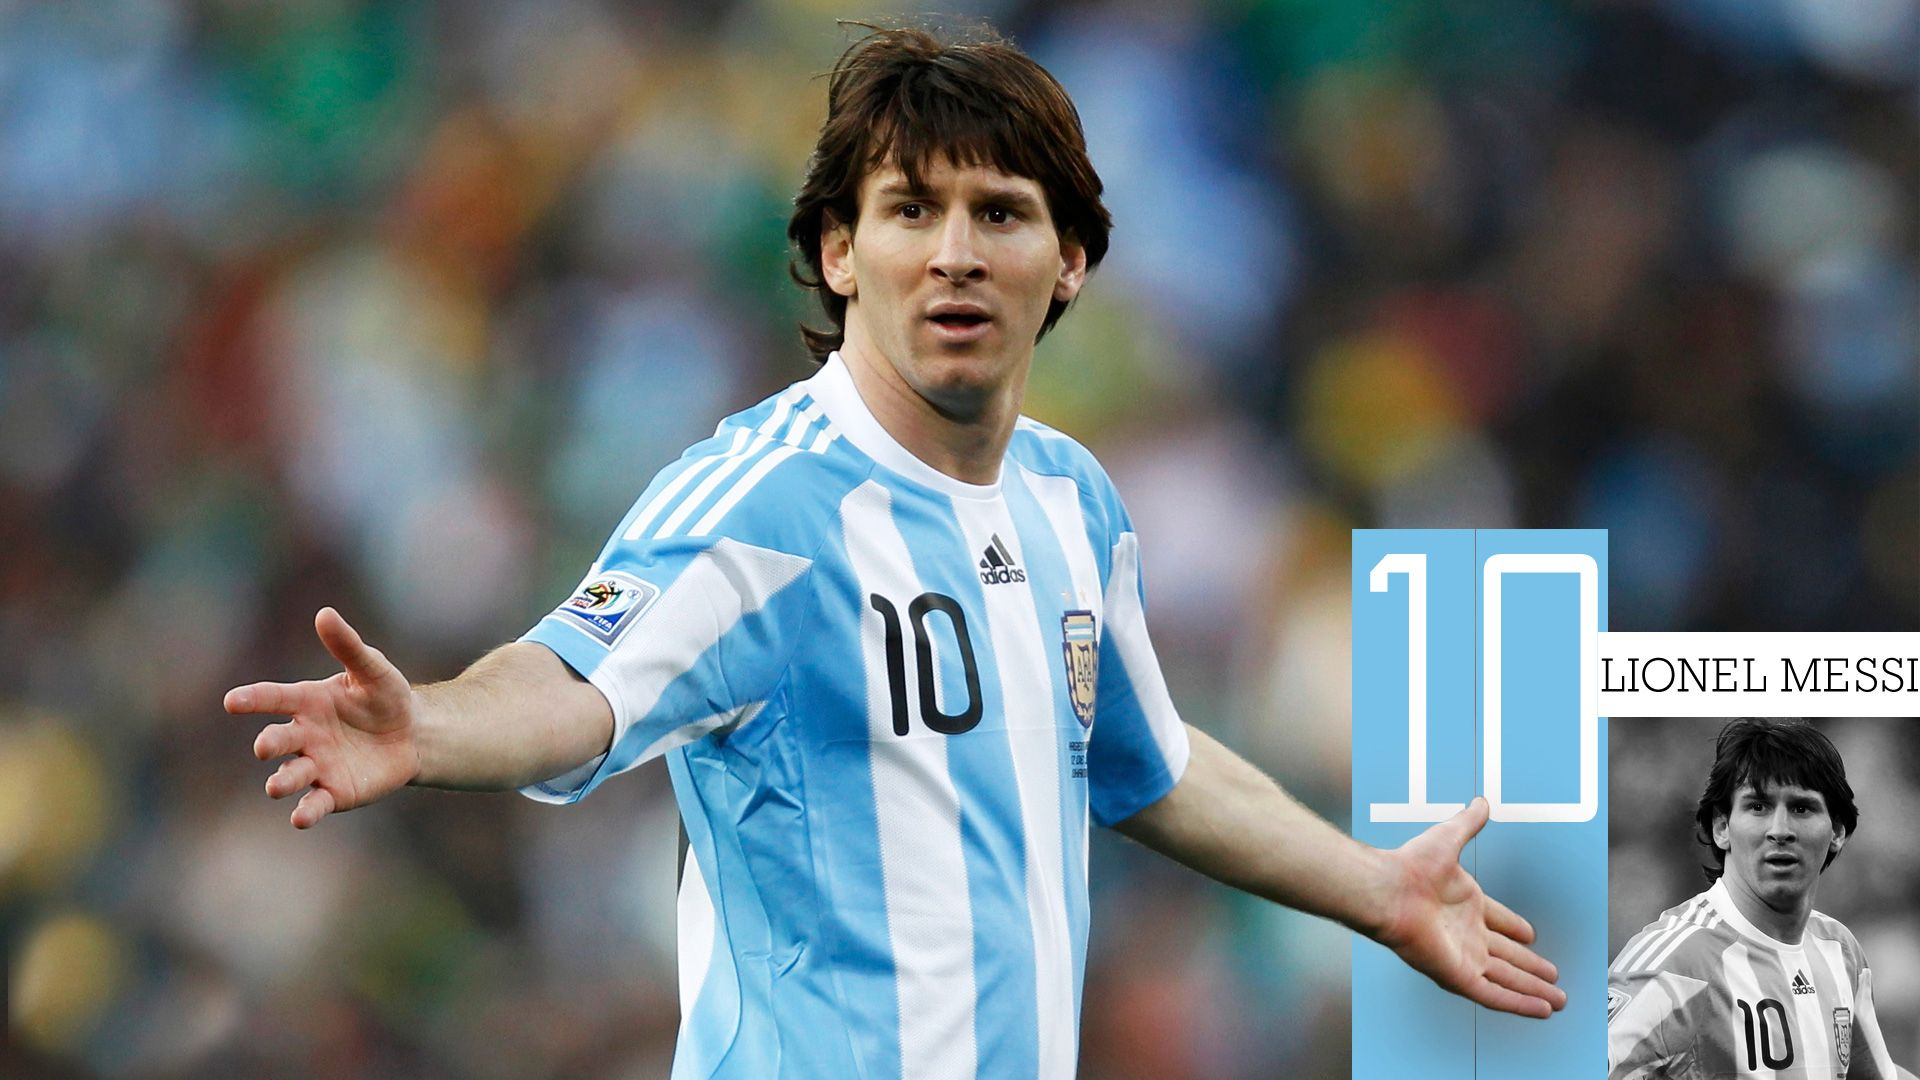 Lionel Messi New Hd Wallpaper Download Hollywood Actress